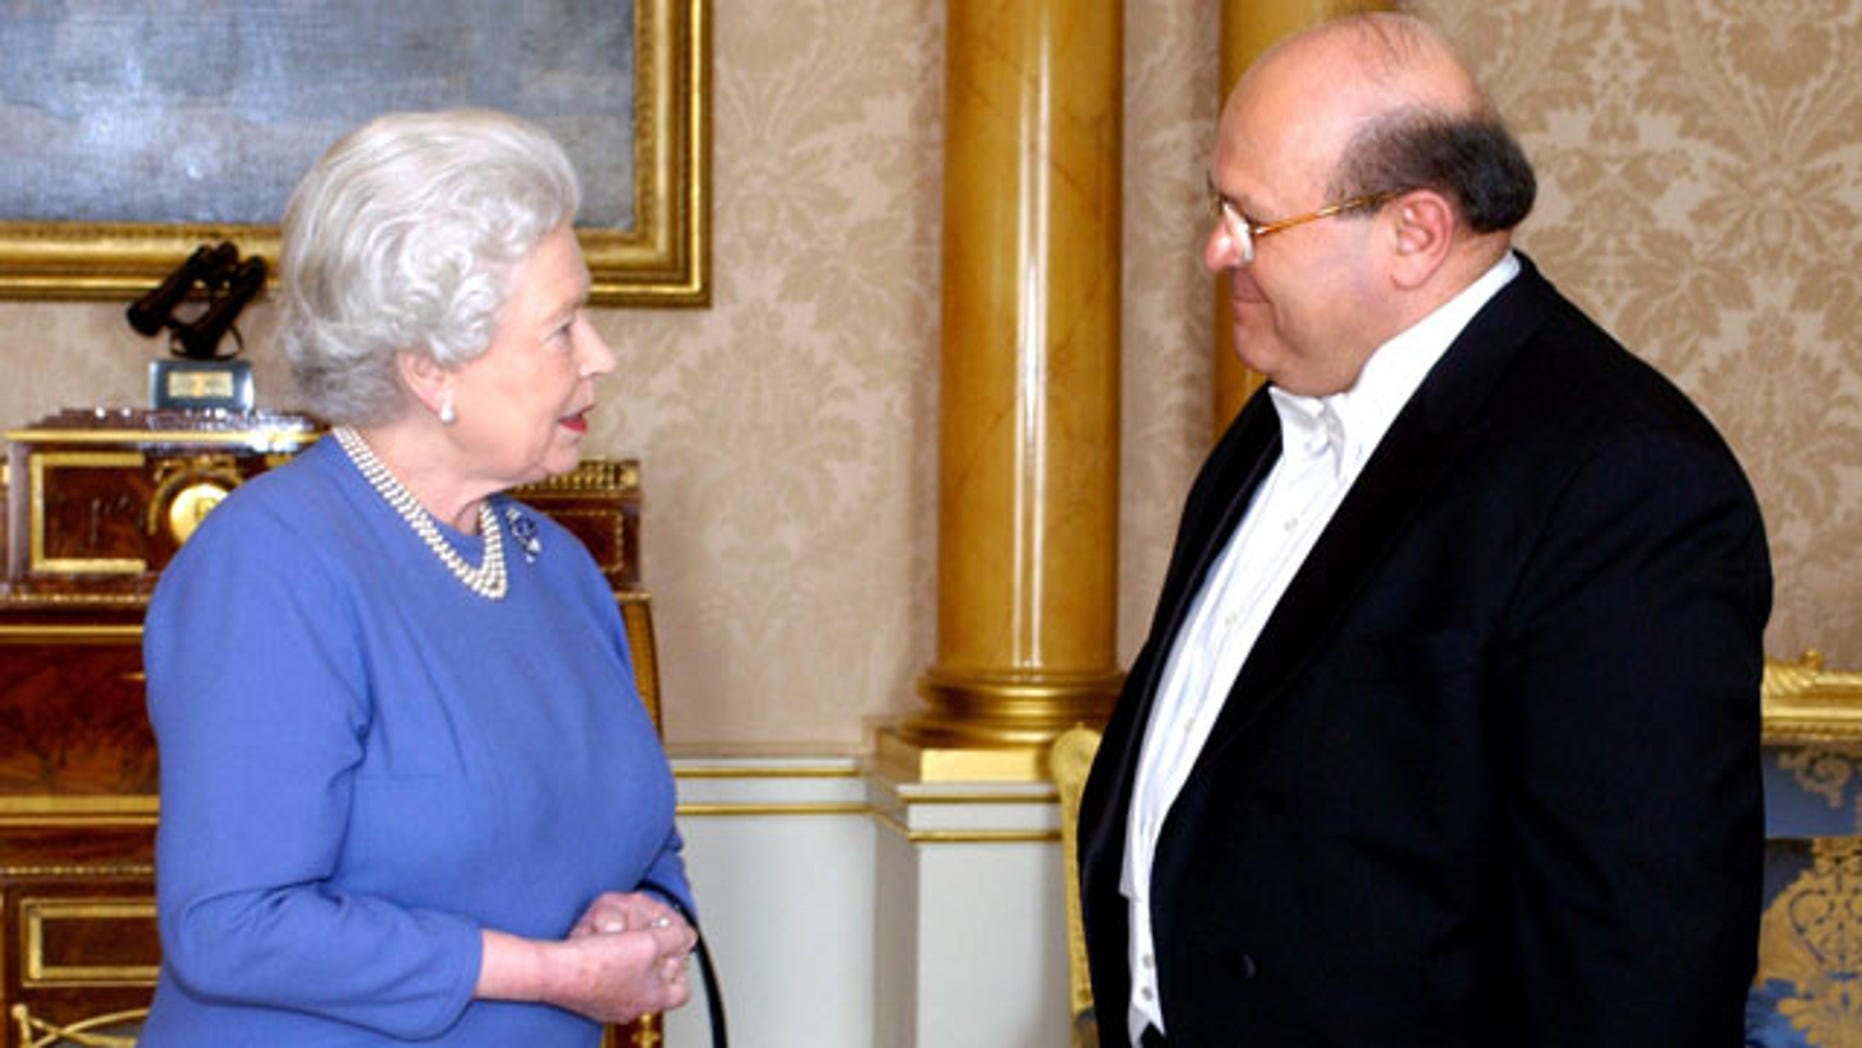 In this March 3, 2005, file photo, Queen Elizabeth II receives the Ambassador of Syria, Sami Khiyami, at Buckingham Palace, London.